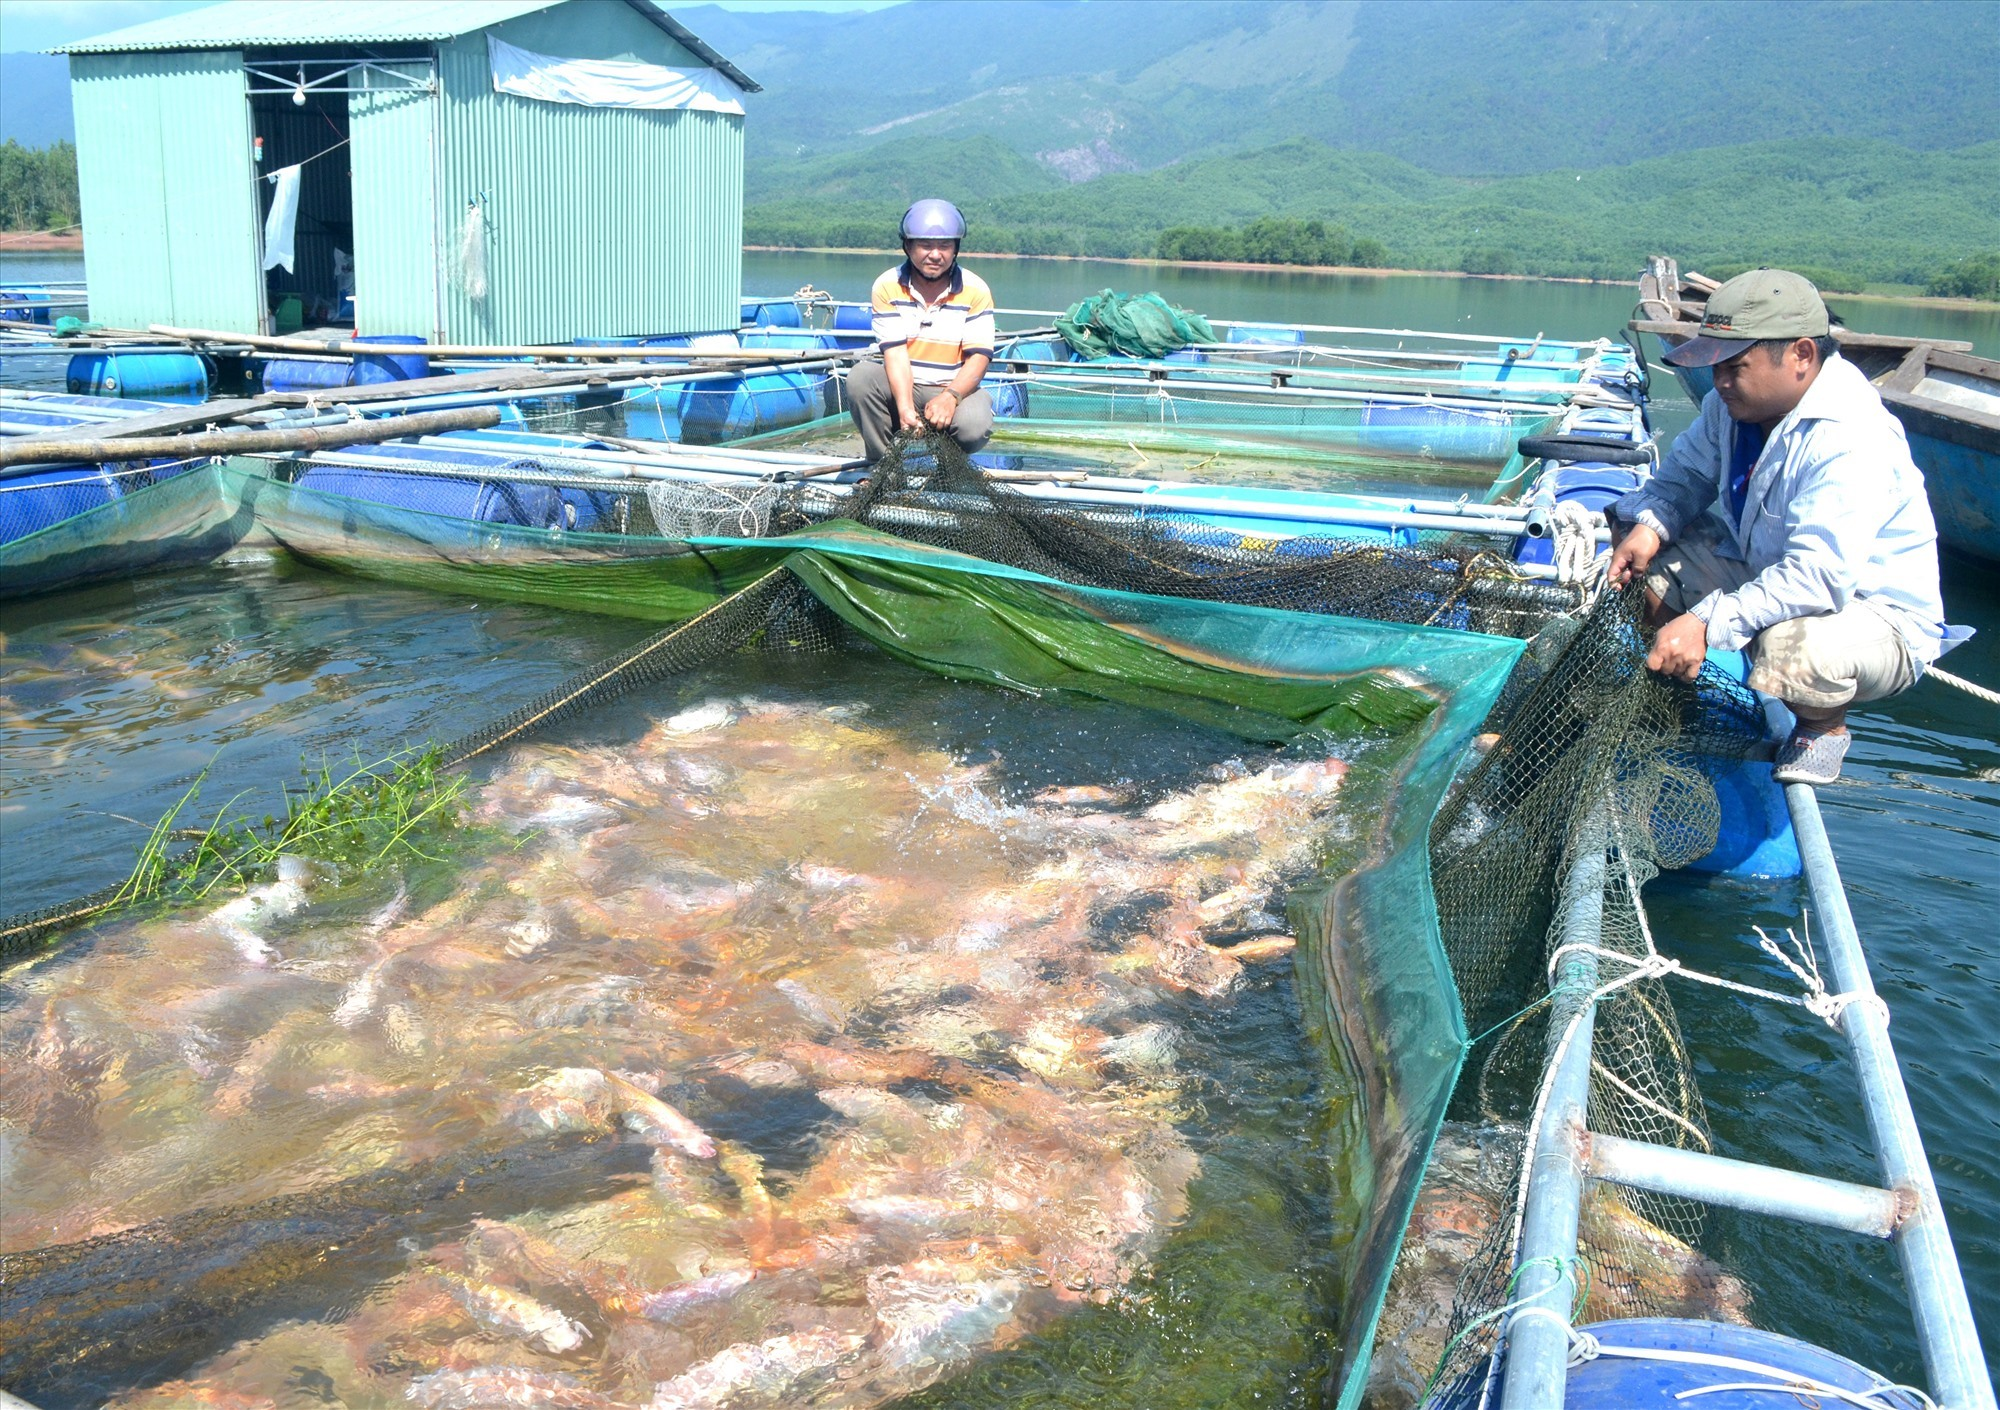 Difficulties in freshwater fish farming due to climate change